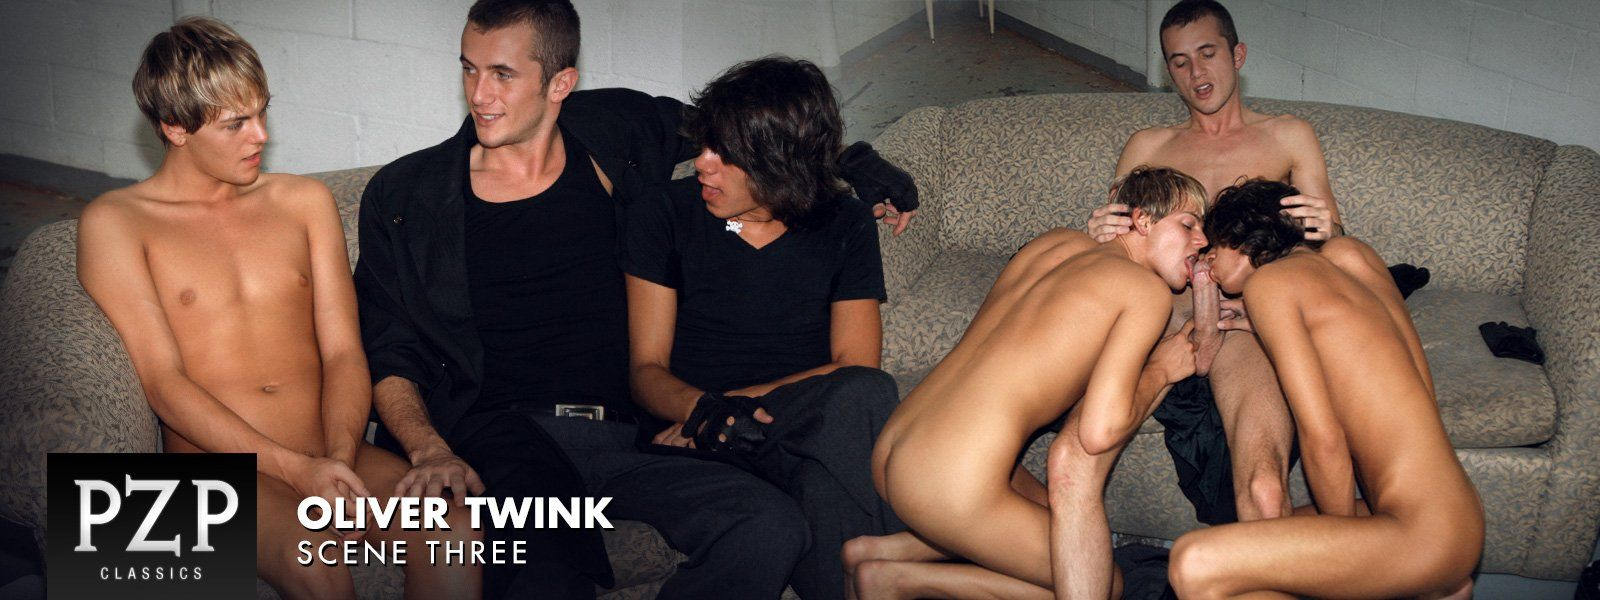 After The Ball Porn Movie oliver twink porn movie . pussy sex images.